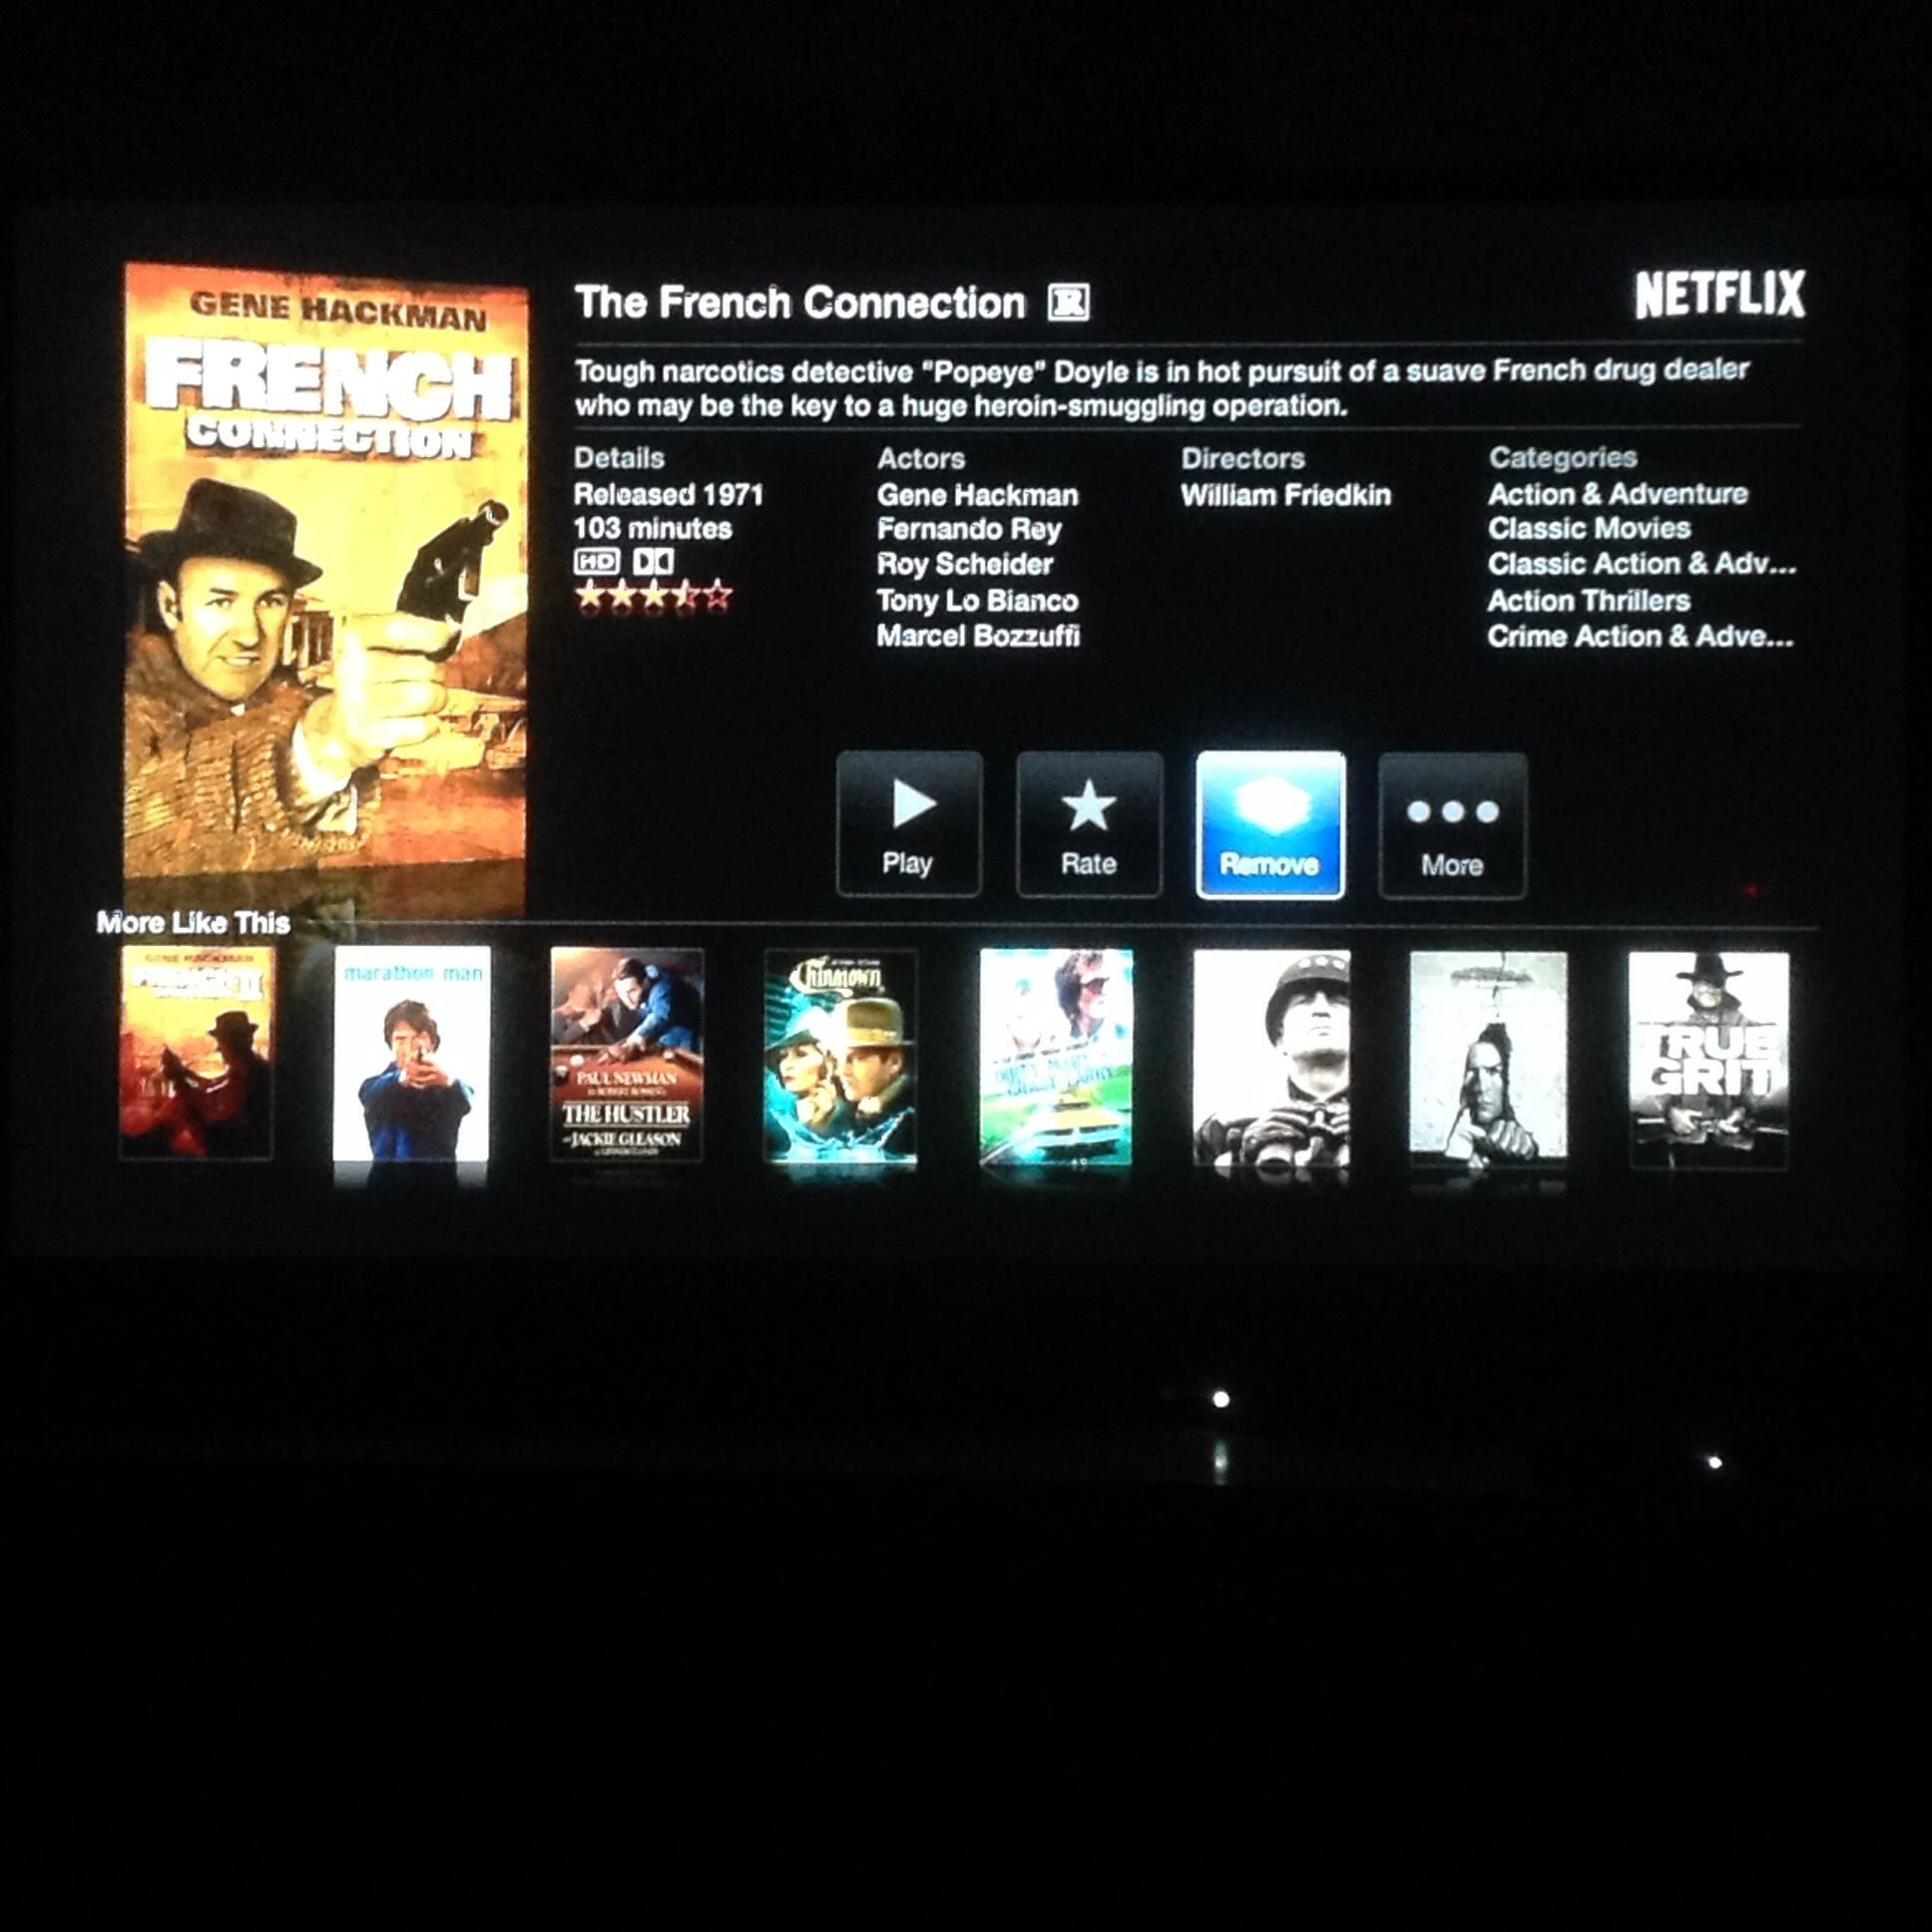 Hayward's photos in Netflix instant movie suggestions